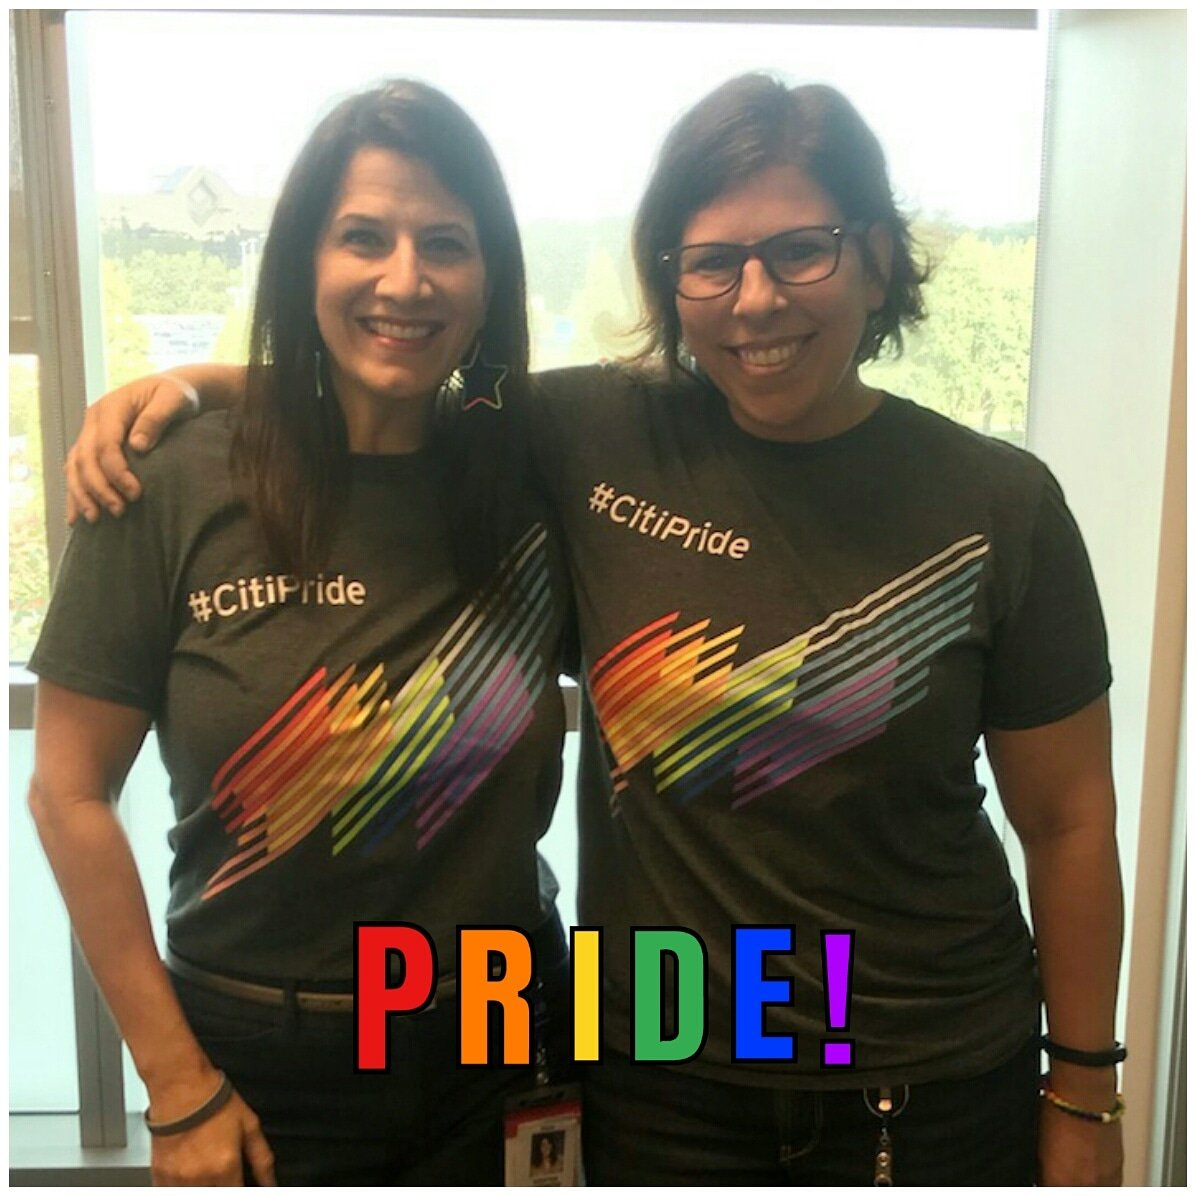 Supporting National Coming Out Day with PRIDE! So happy to work for a company who supports diversity and inclusion. #nationalcomingoutday #ncod #lgbtallys. #LifeAtCiti. #CitiAmbassador #CitiTampa. #Citi